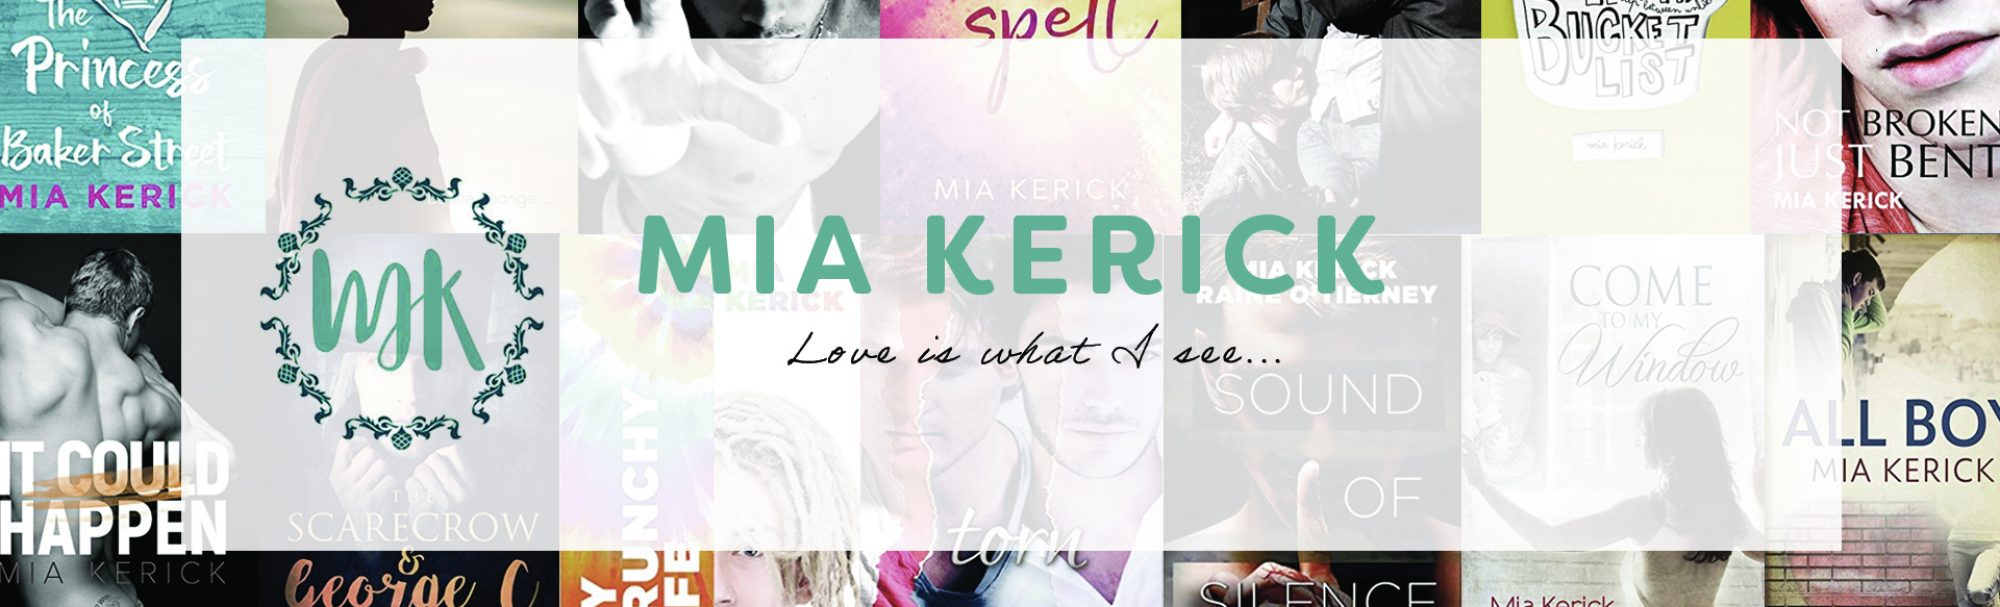 Mia Kerick – Official Website